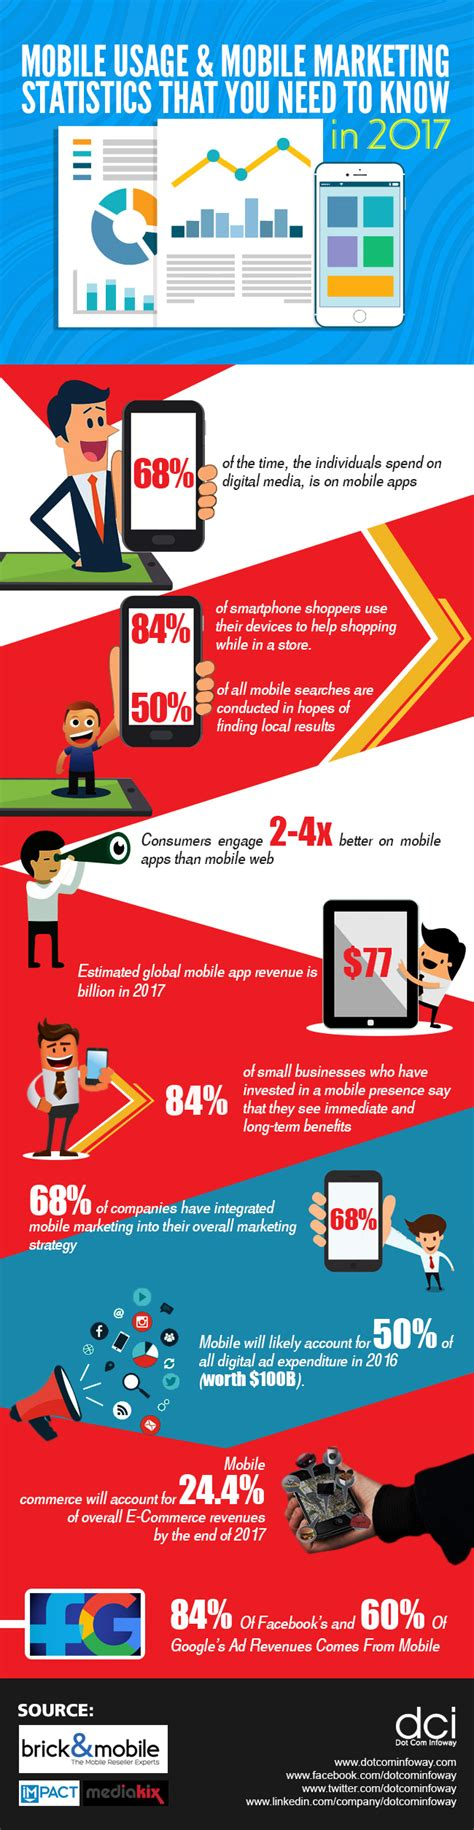 mobile marketing statistics mobile usage mobile marketing statistics that you need